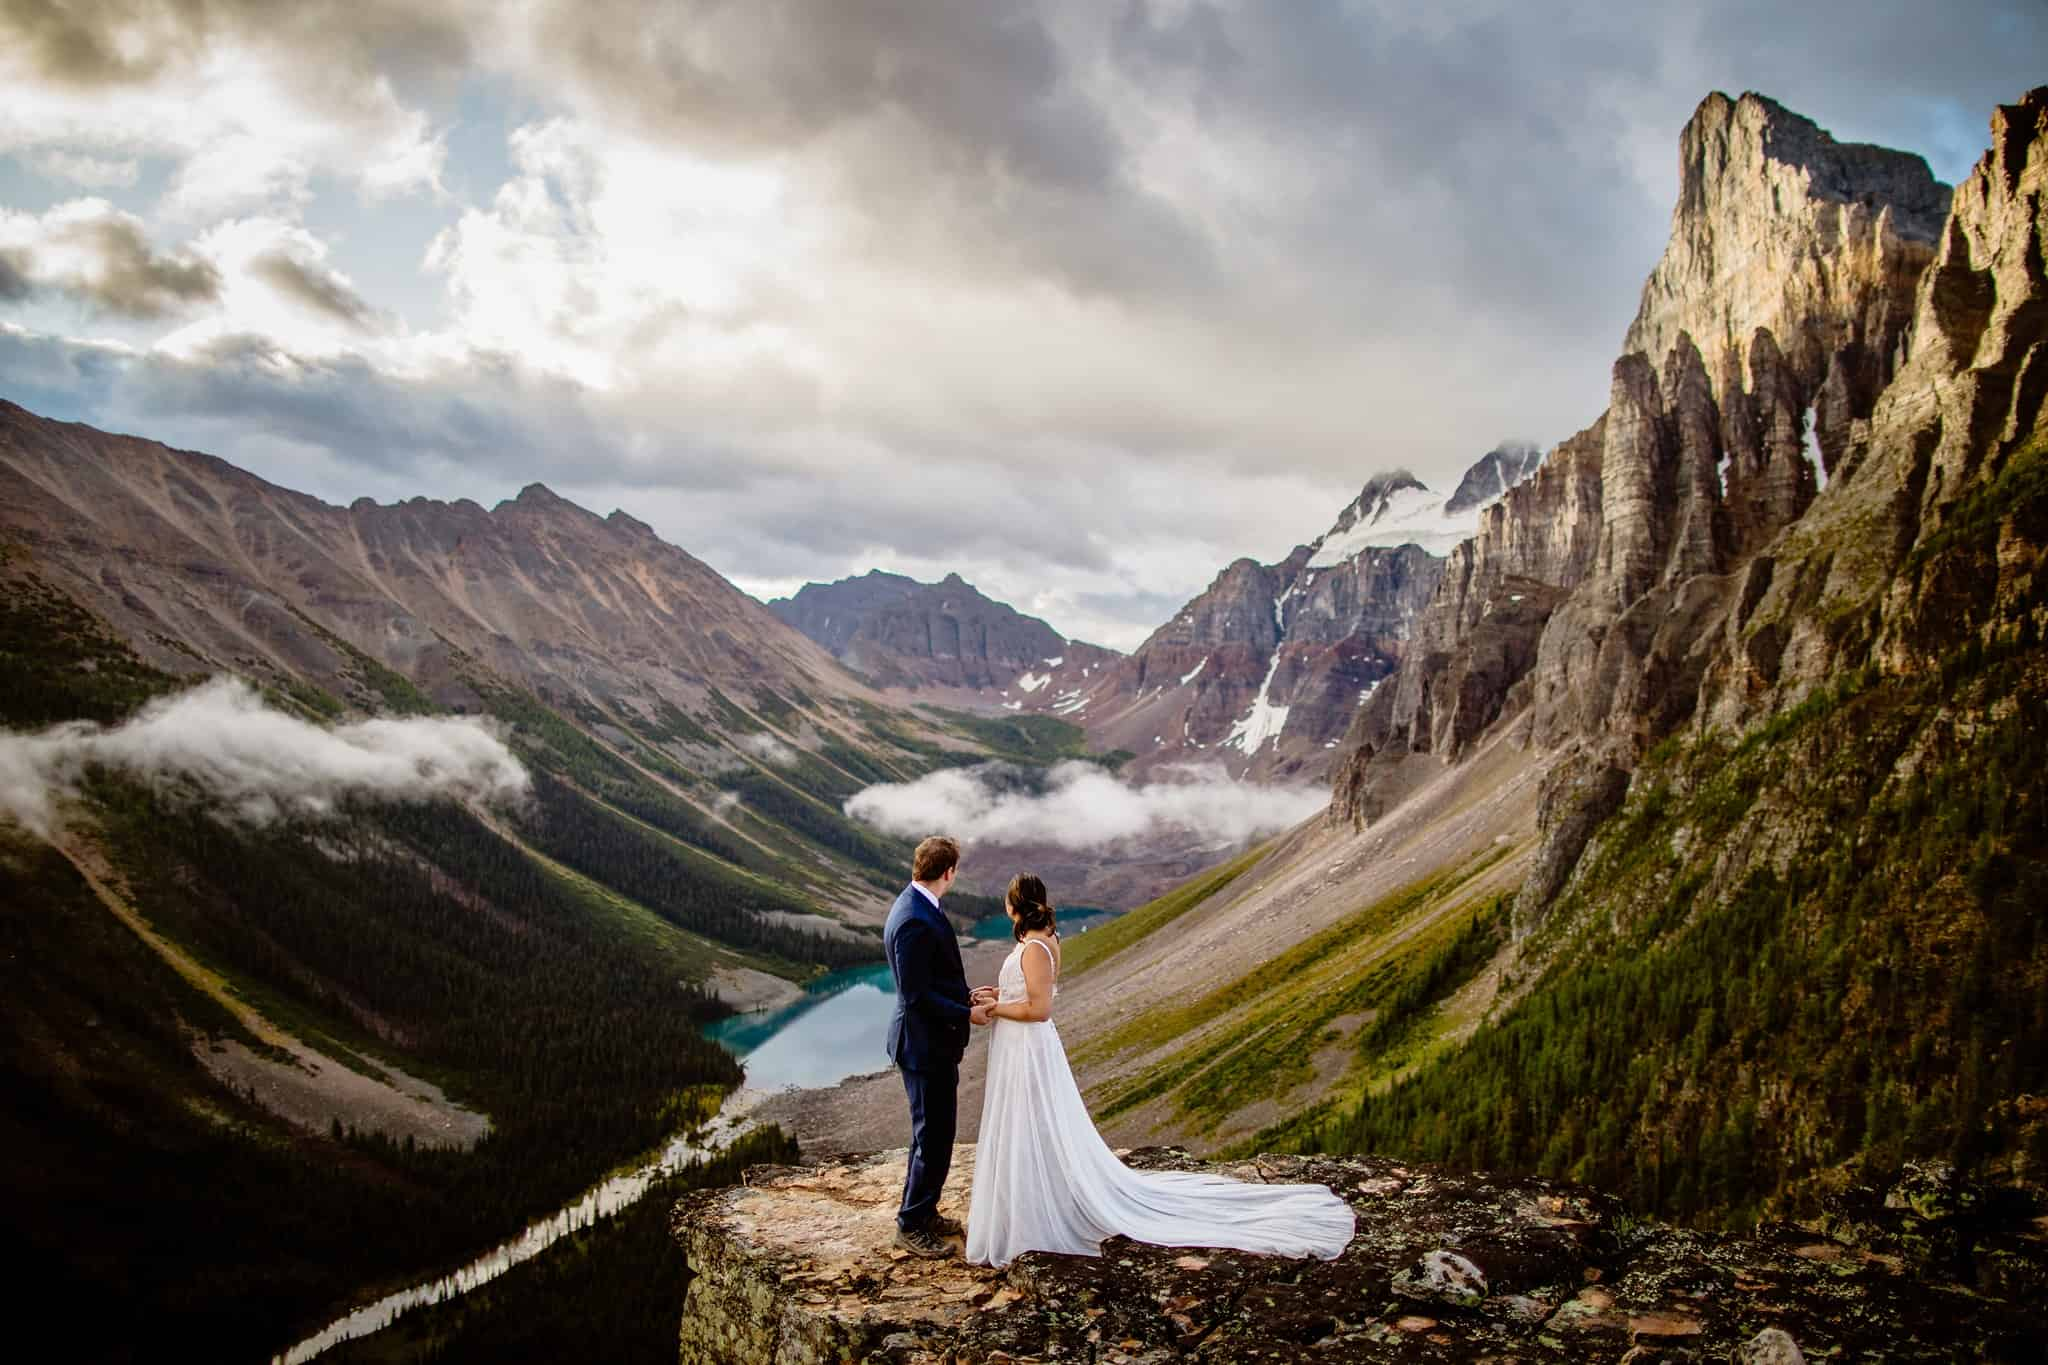 A wedding couple looking down on Banff national park in Canada